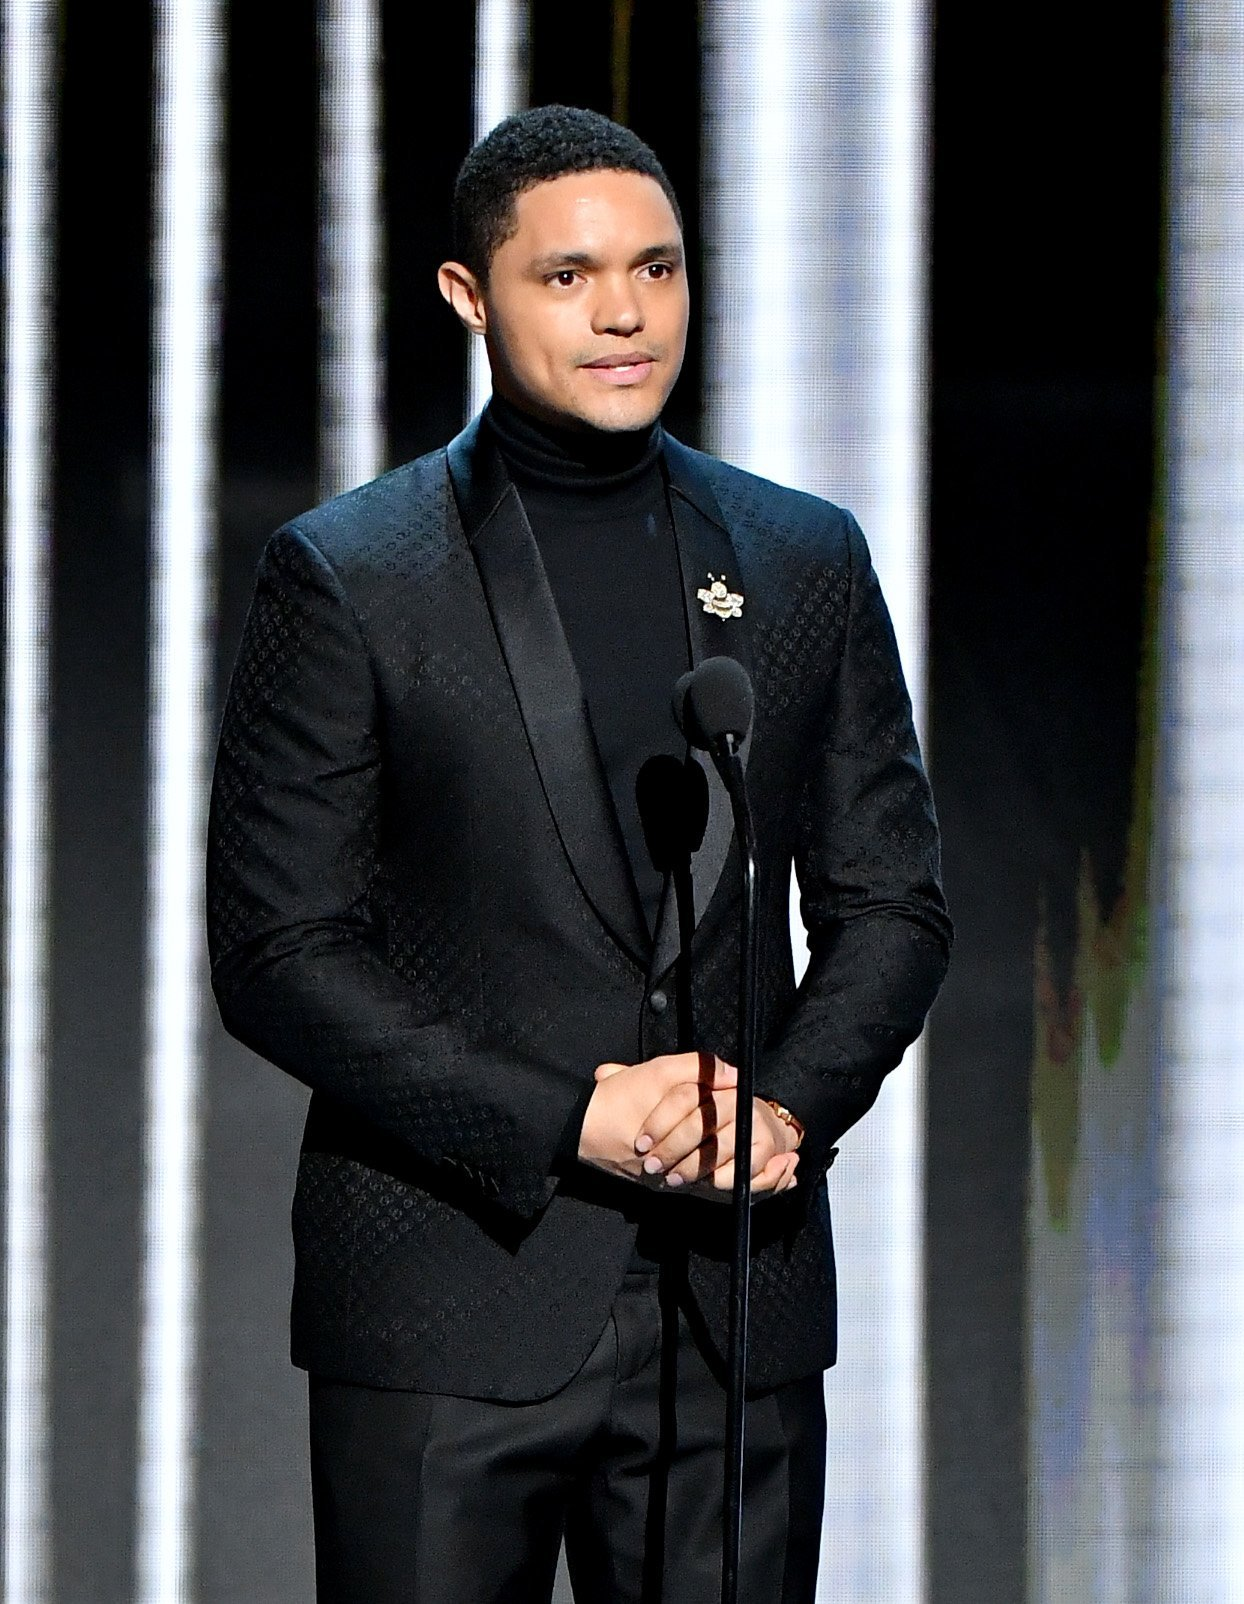 Trevor Noah during the 50th NAACP Image Awards at Dolby Theatre on March 30, 2019 in Hollywood. | Source: Getty Images